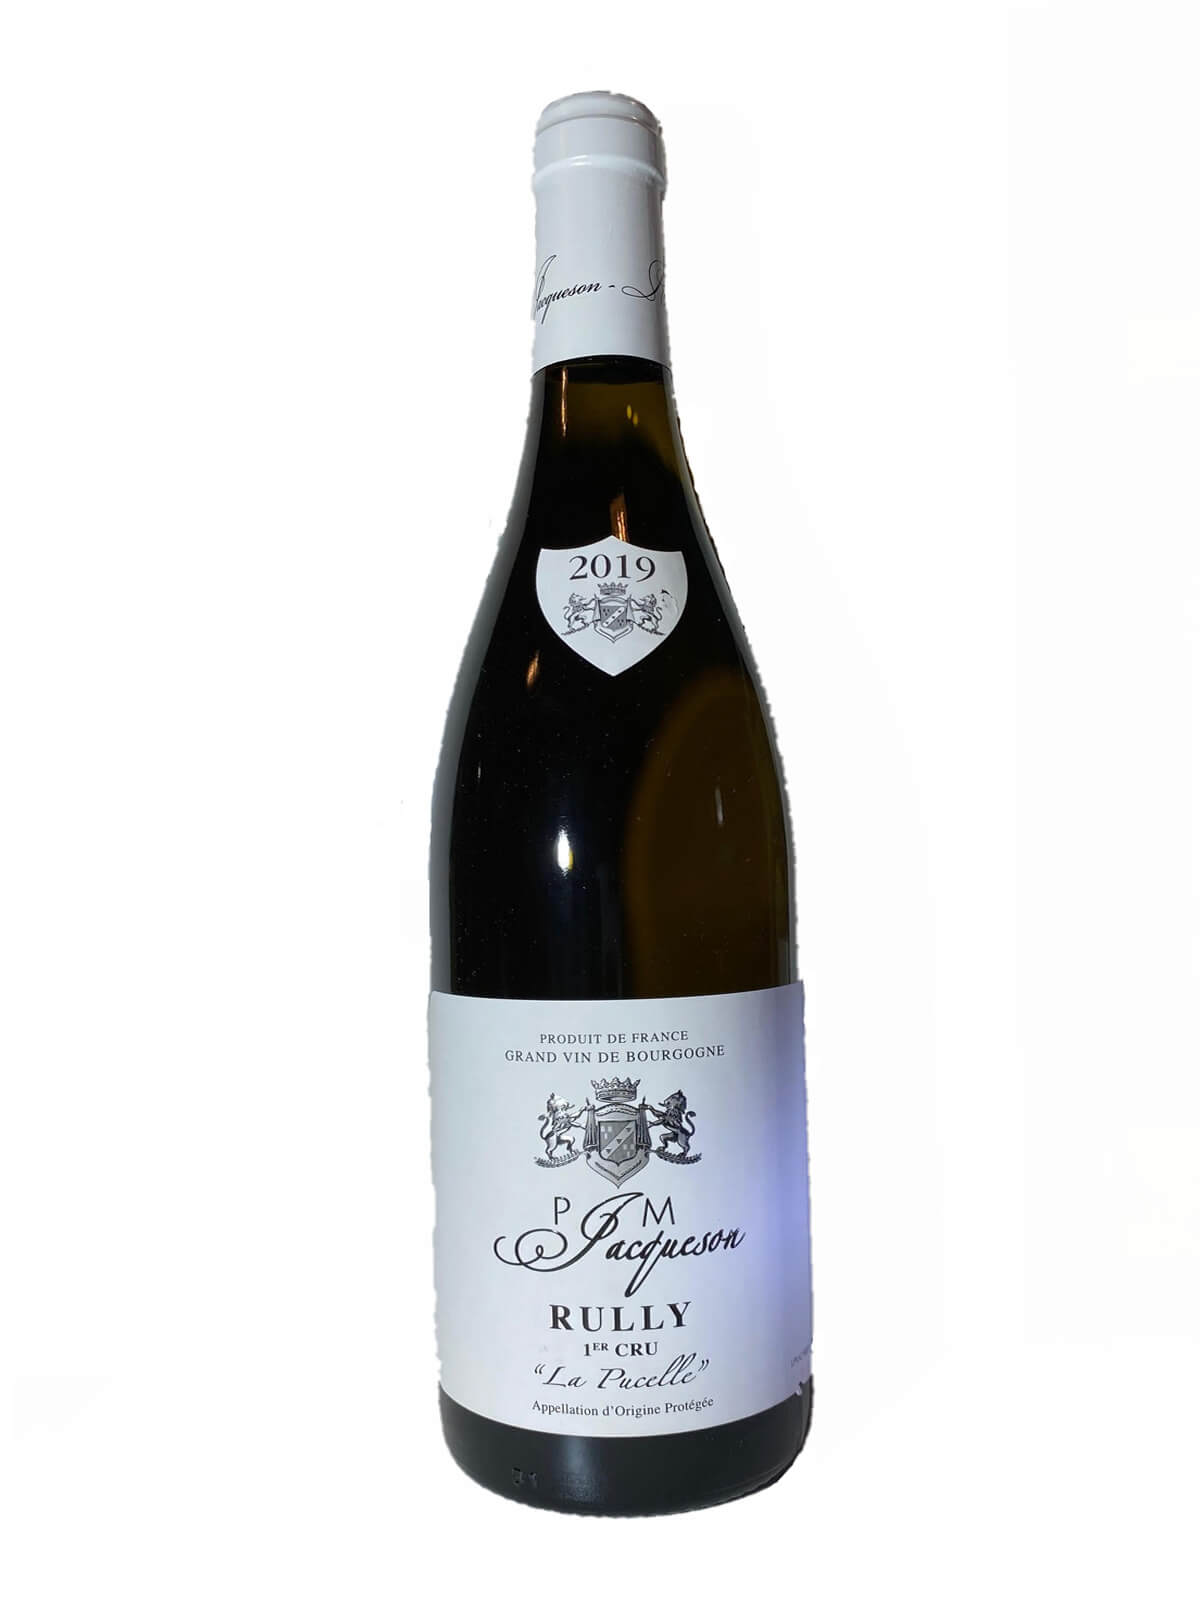 Rully 1er cru la pucelle domaine jacqueson